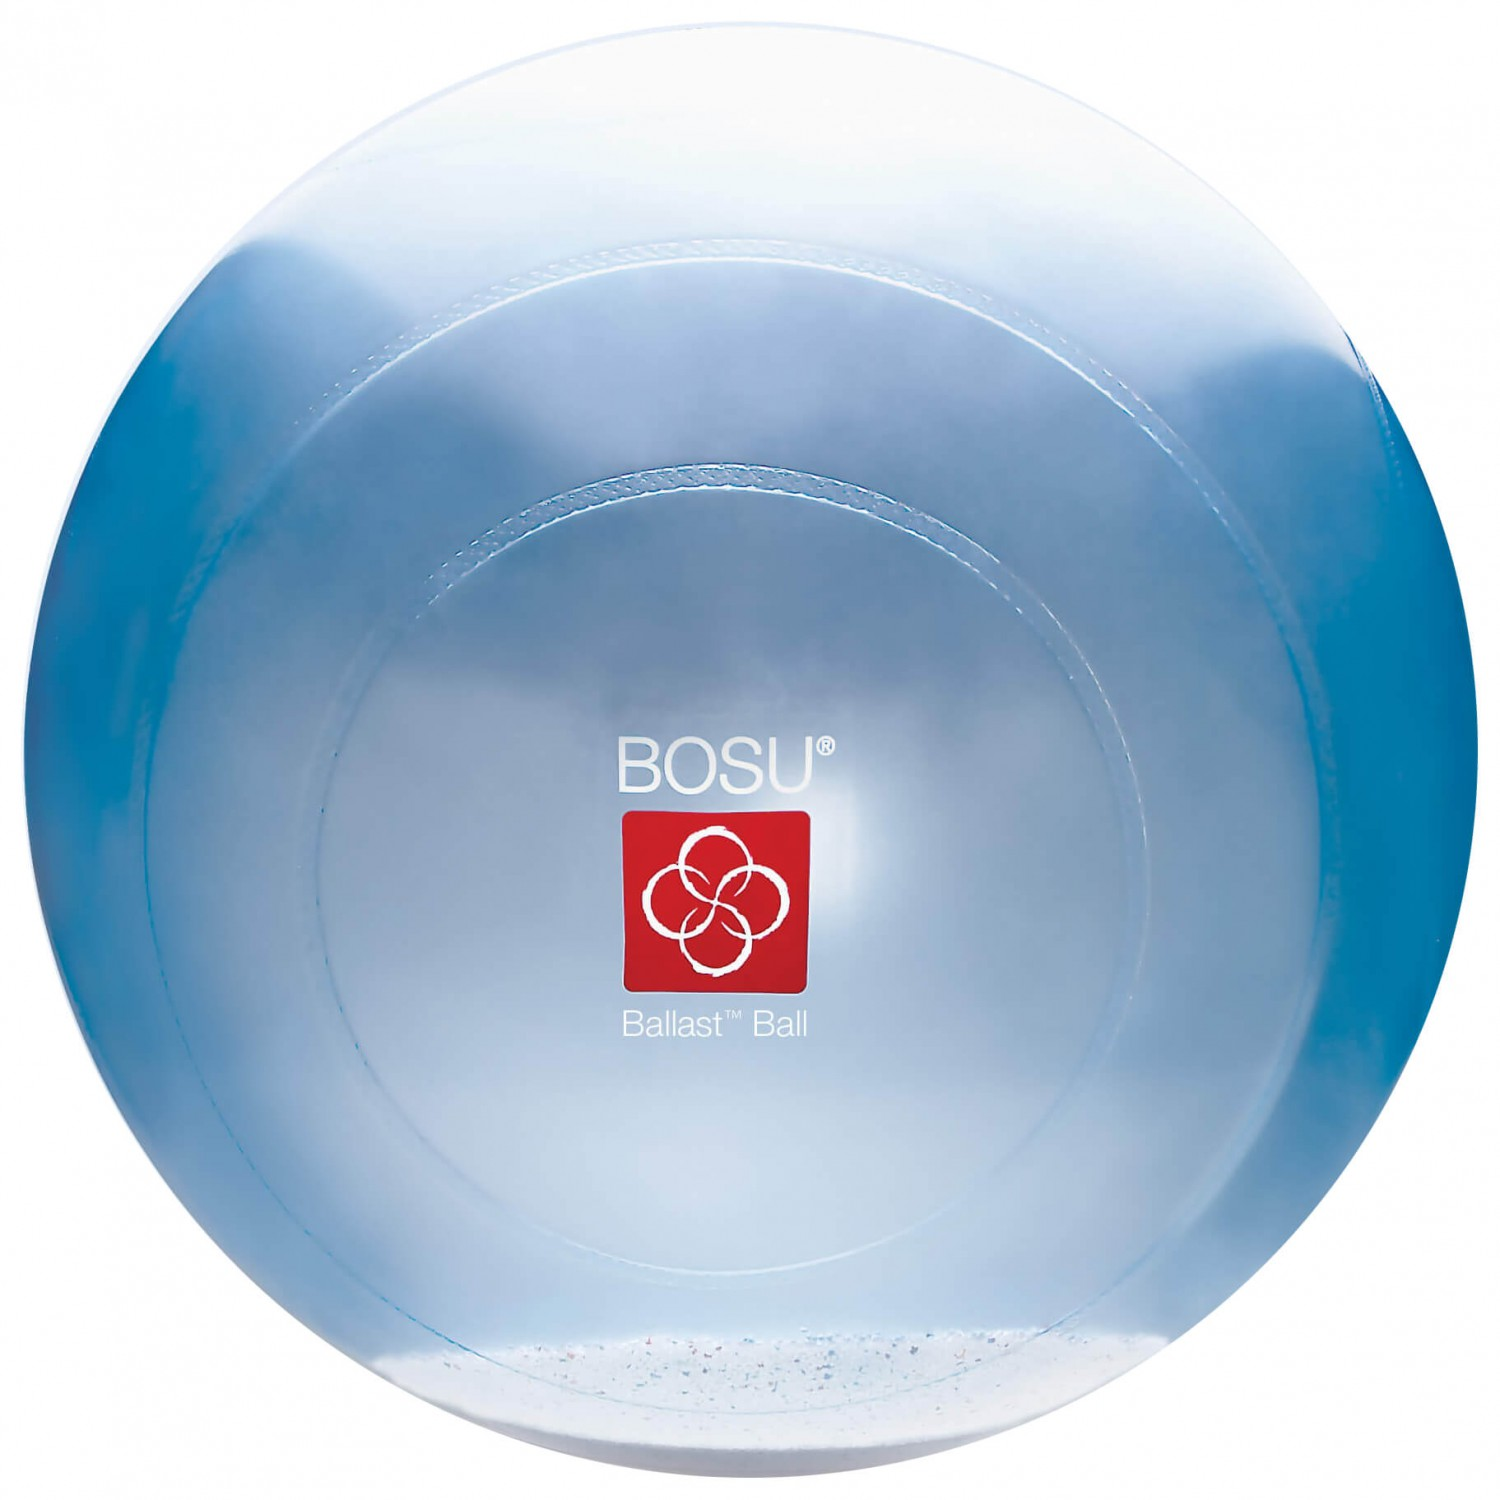 BOSU Ballast Ball for Functional Training